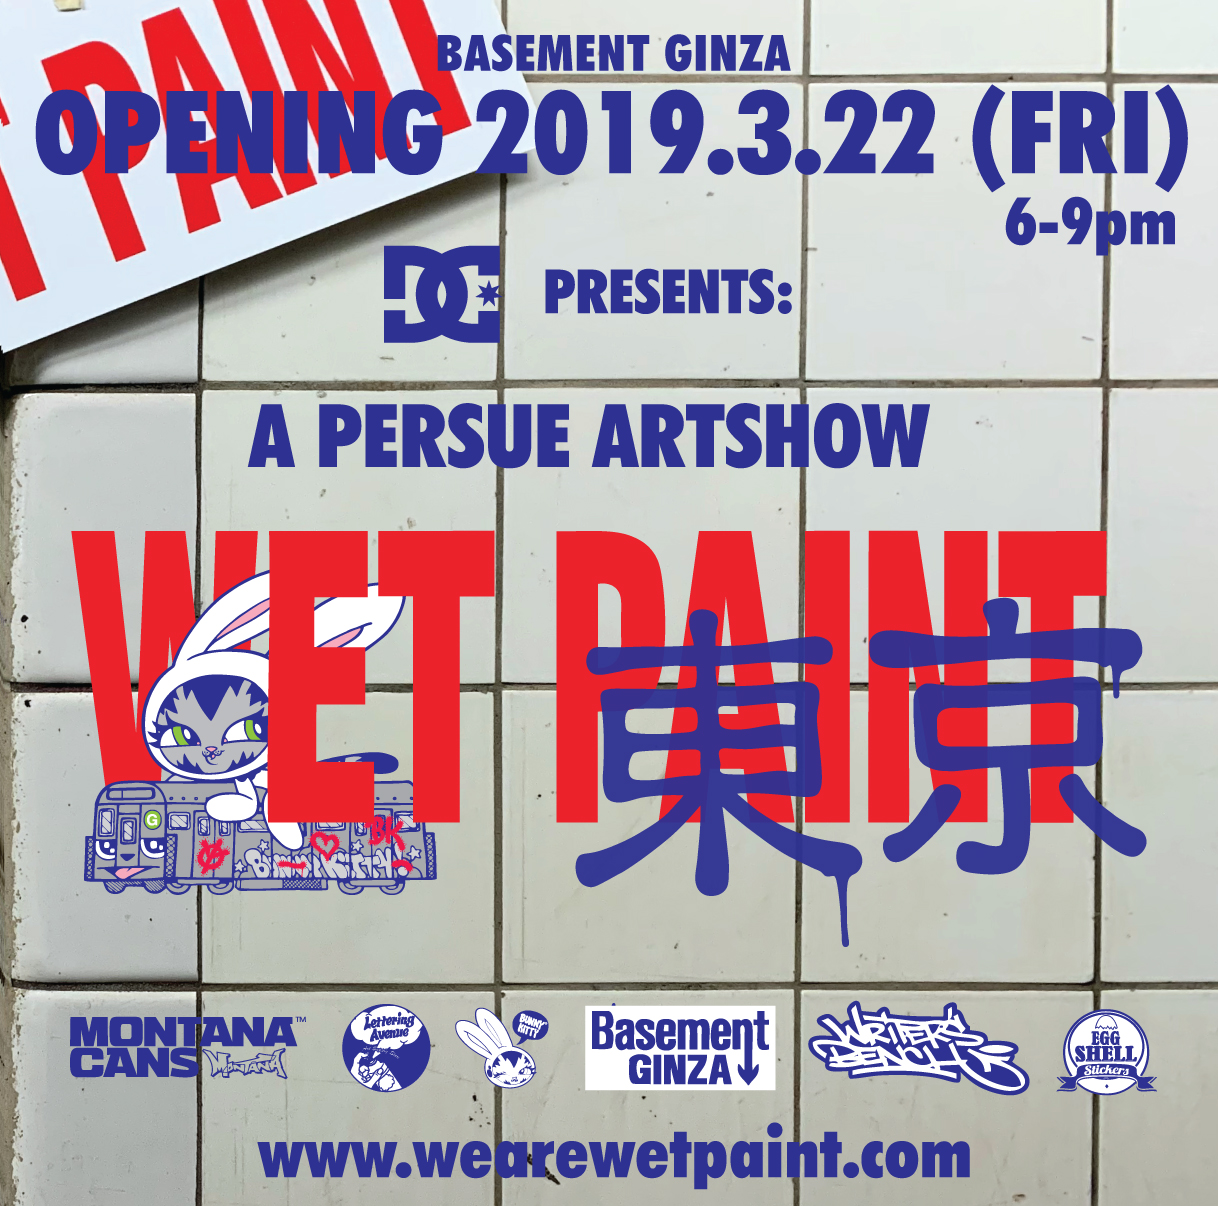 Flyer_small_WPxTKO_japanese_version.JPG